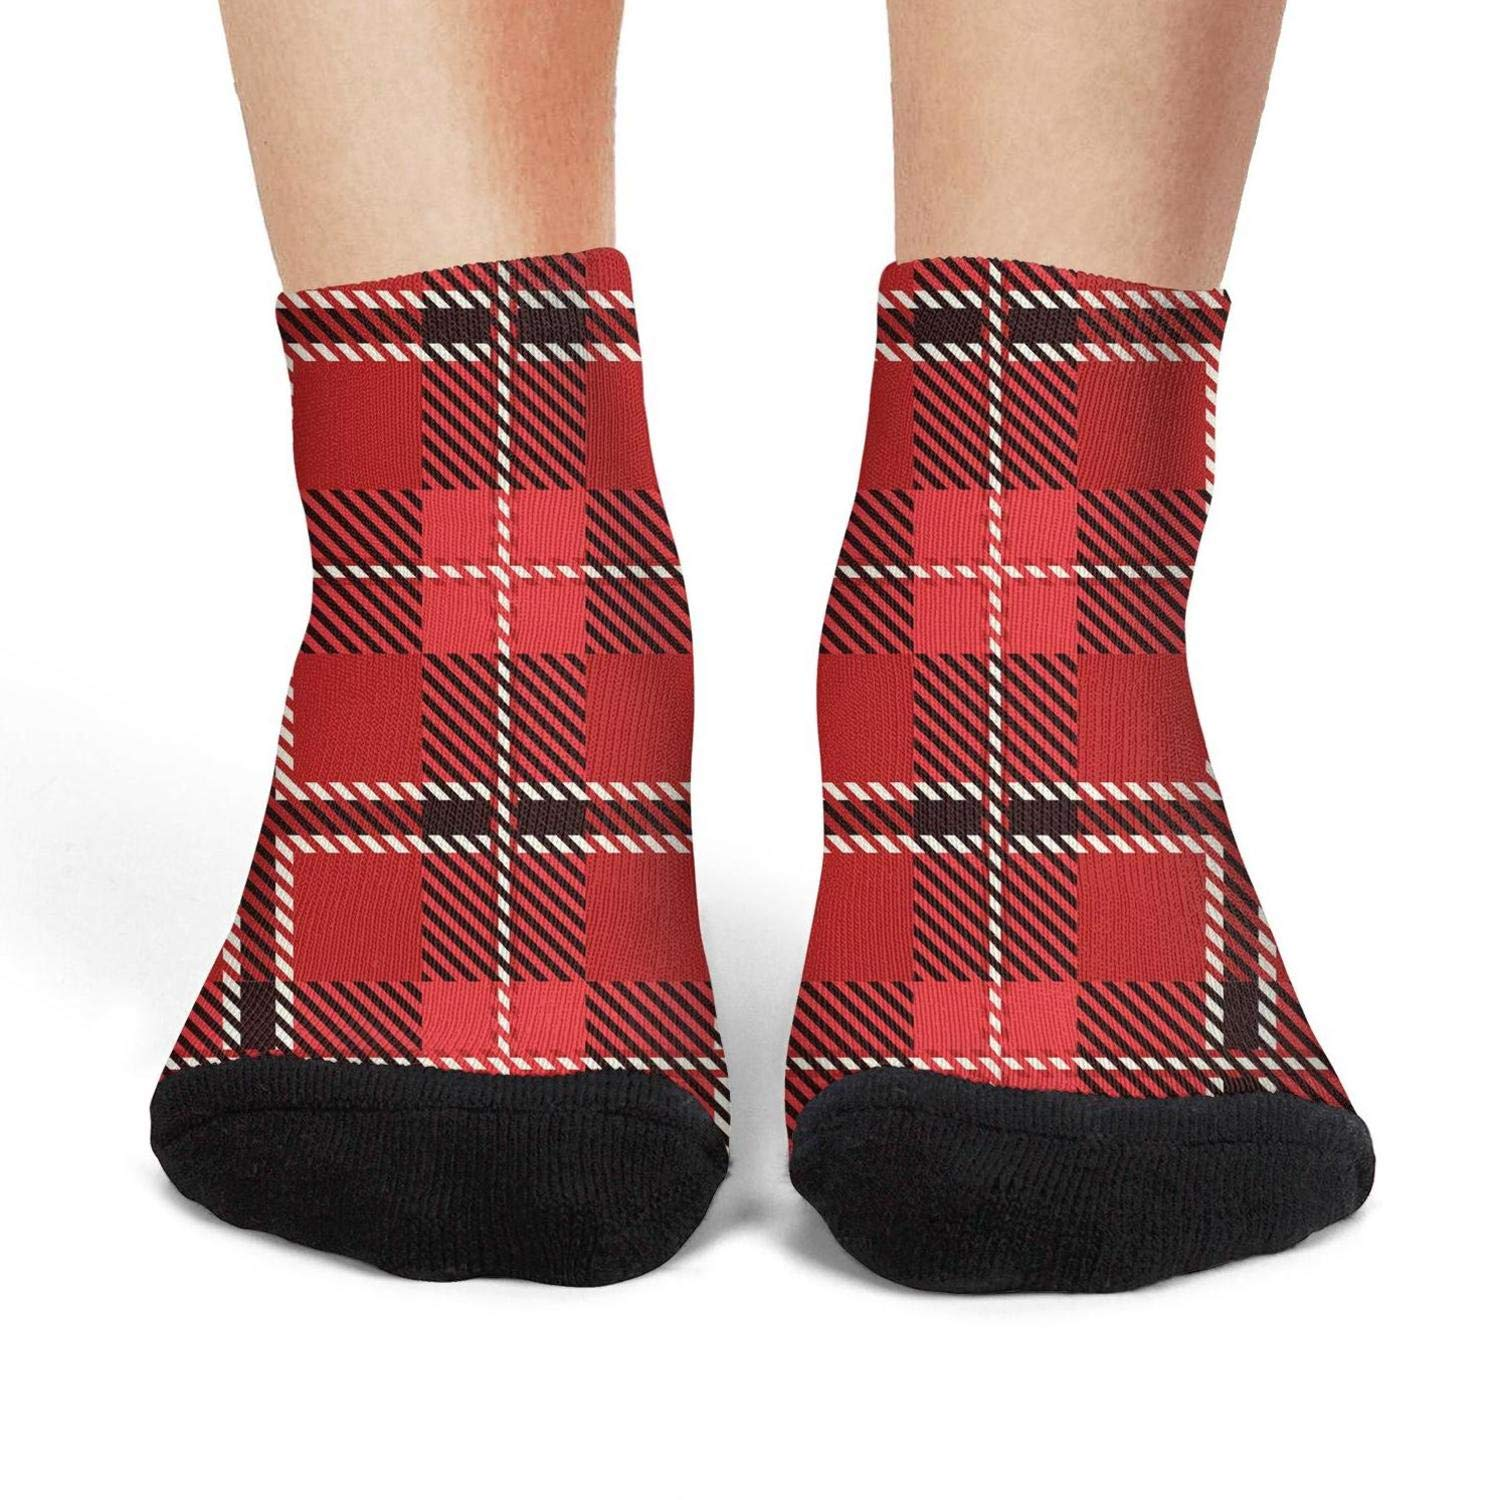 Mens athletic low cut Ankle sock Red Black Checkerboard British Plaid Vintage Non-Slip Fit Short Sock